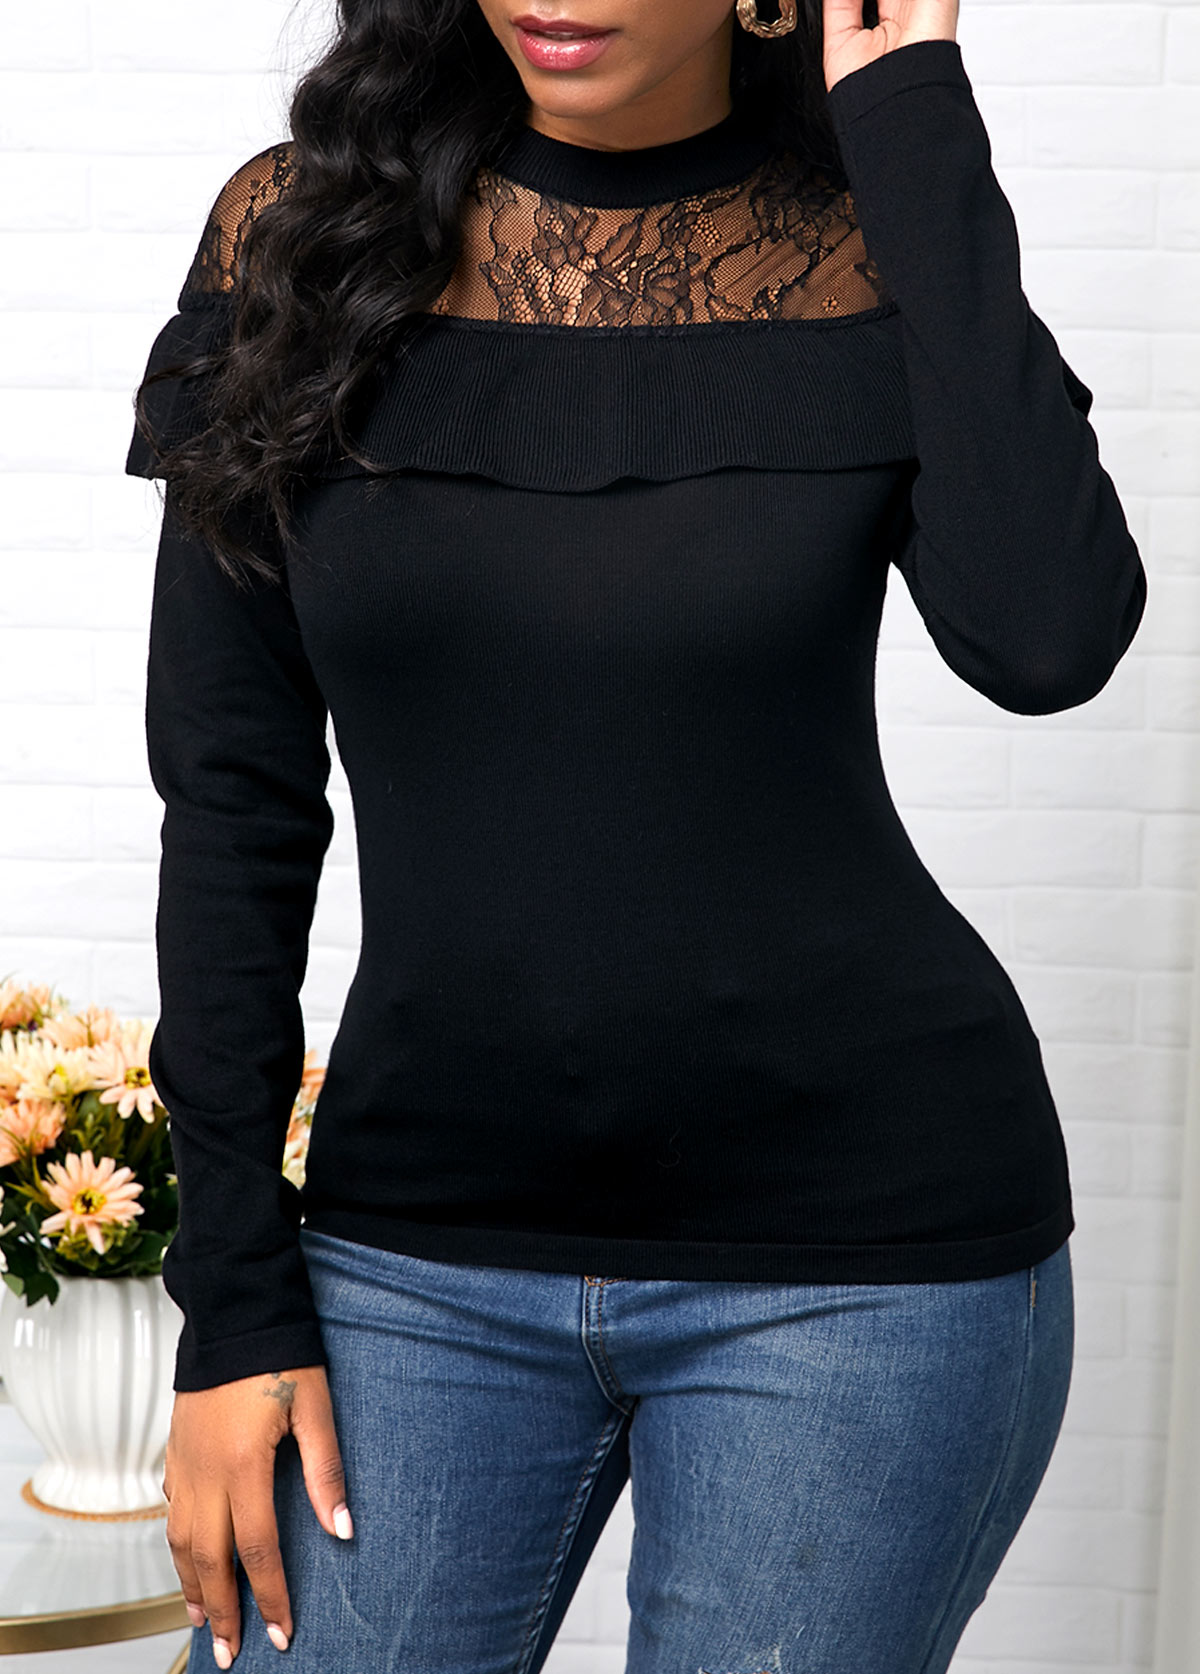 ROTITA Lace Patchwork Black Ruffle Decorated Sweater